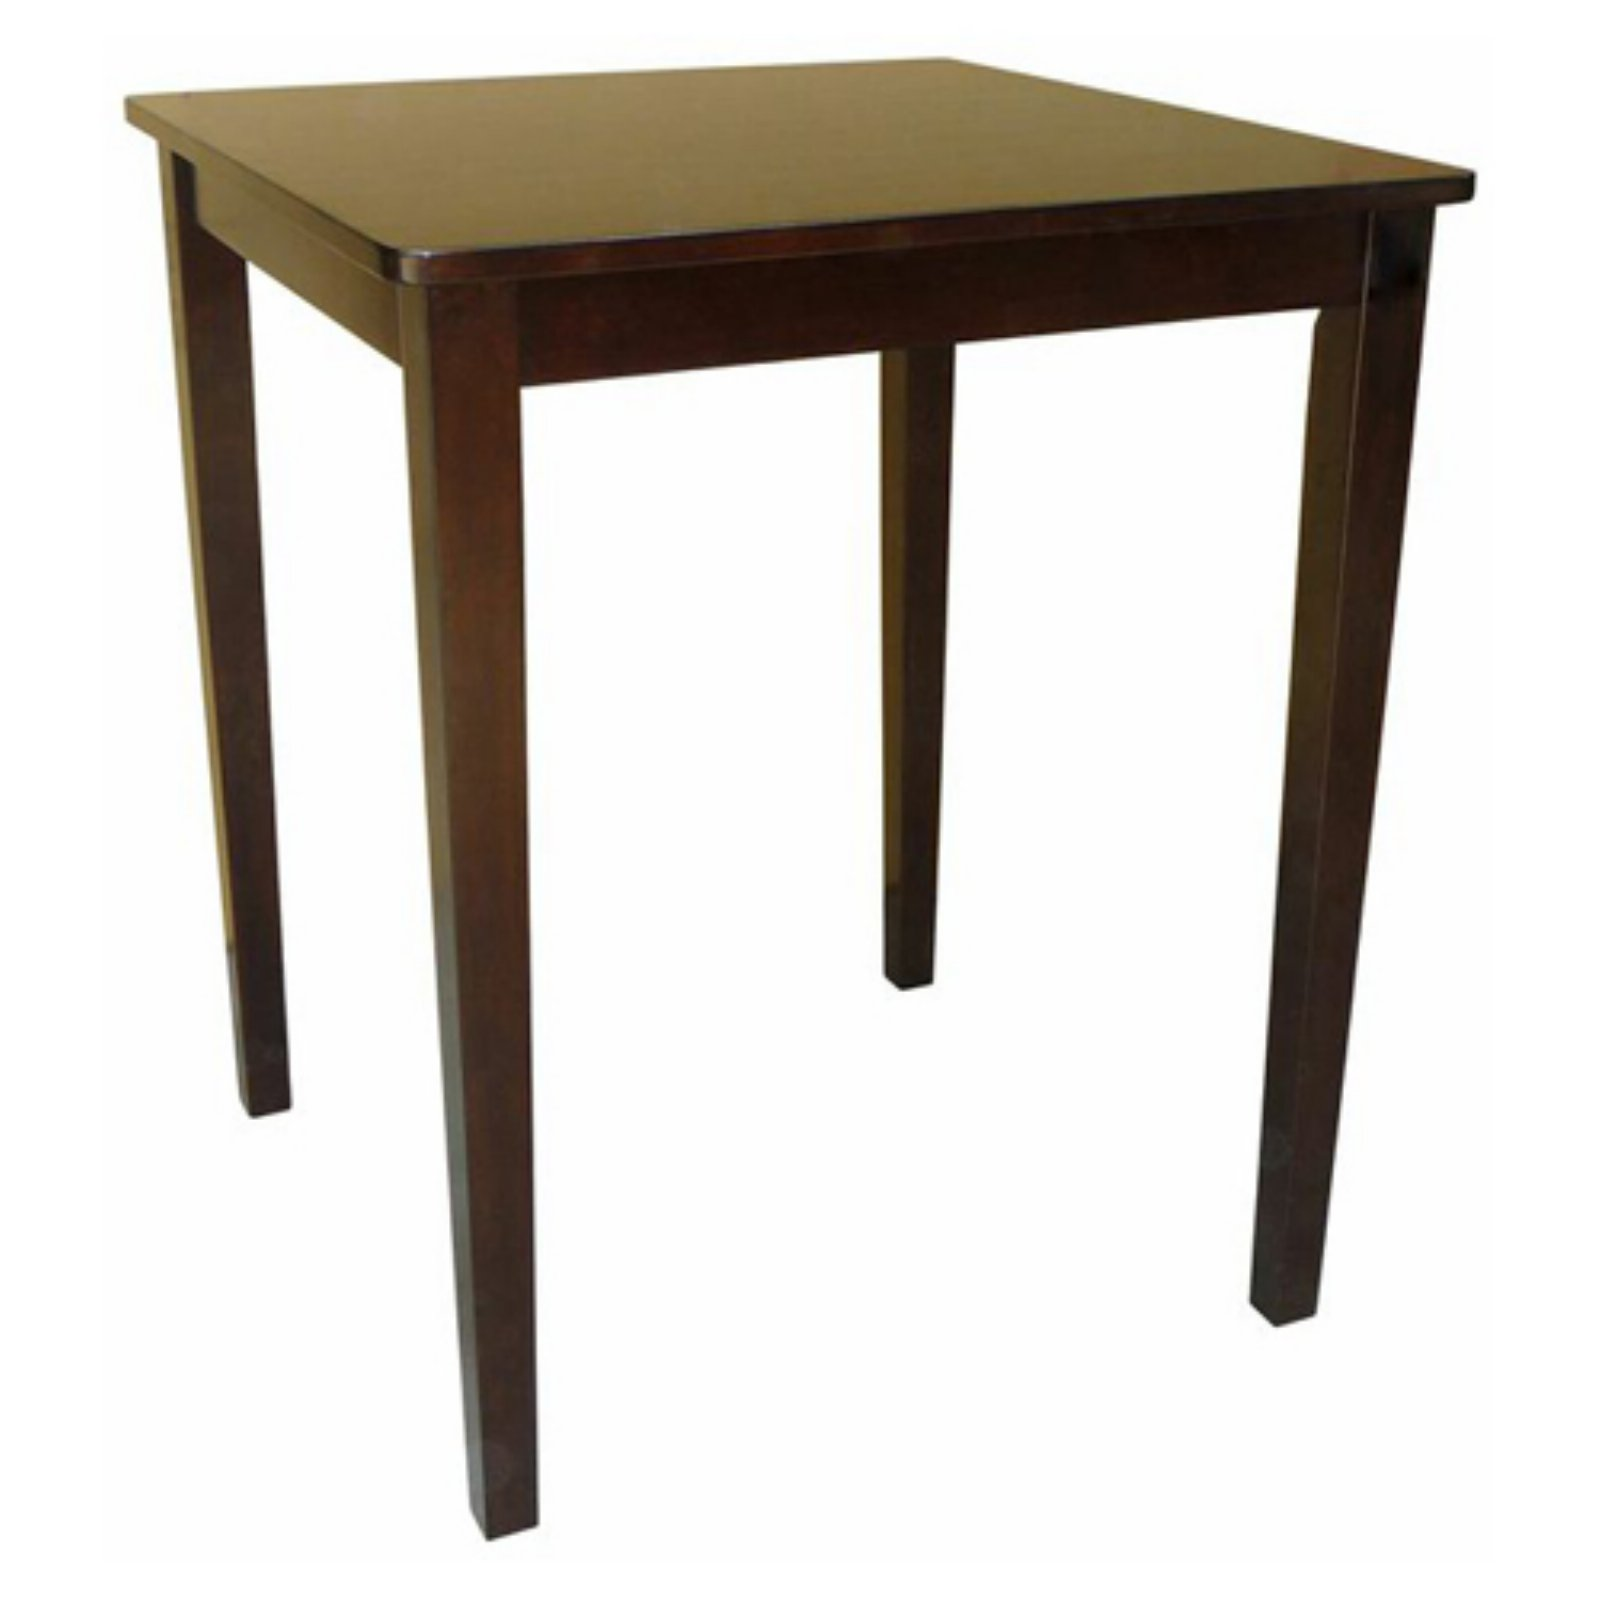 International Concepts Rives Shaker Styled Counter Height Dining Table - Square with Straight Legs - Rich Mocha